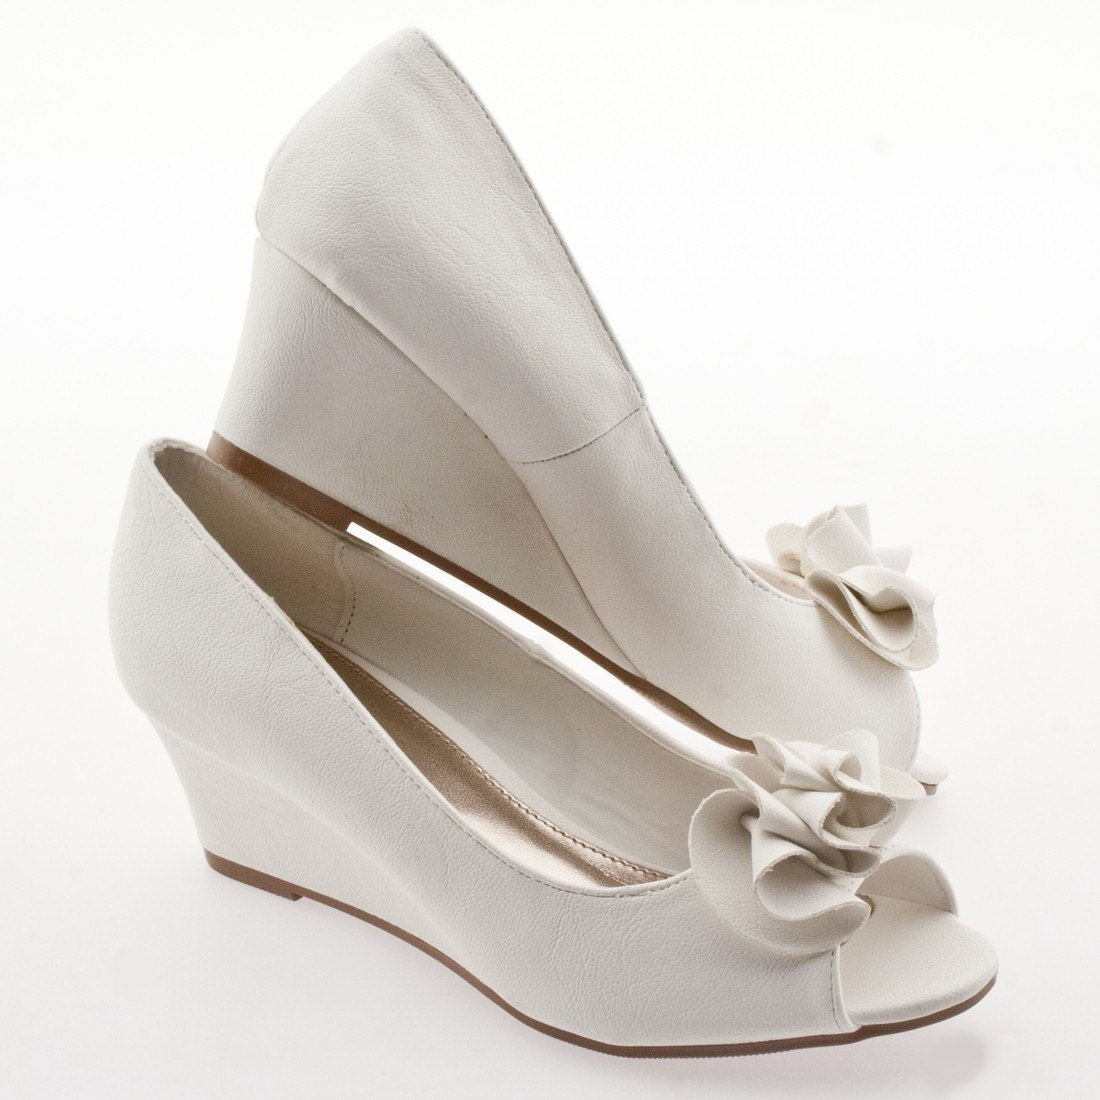 The Perfect Bridal Wedge Shoe